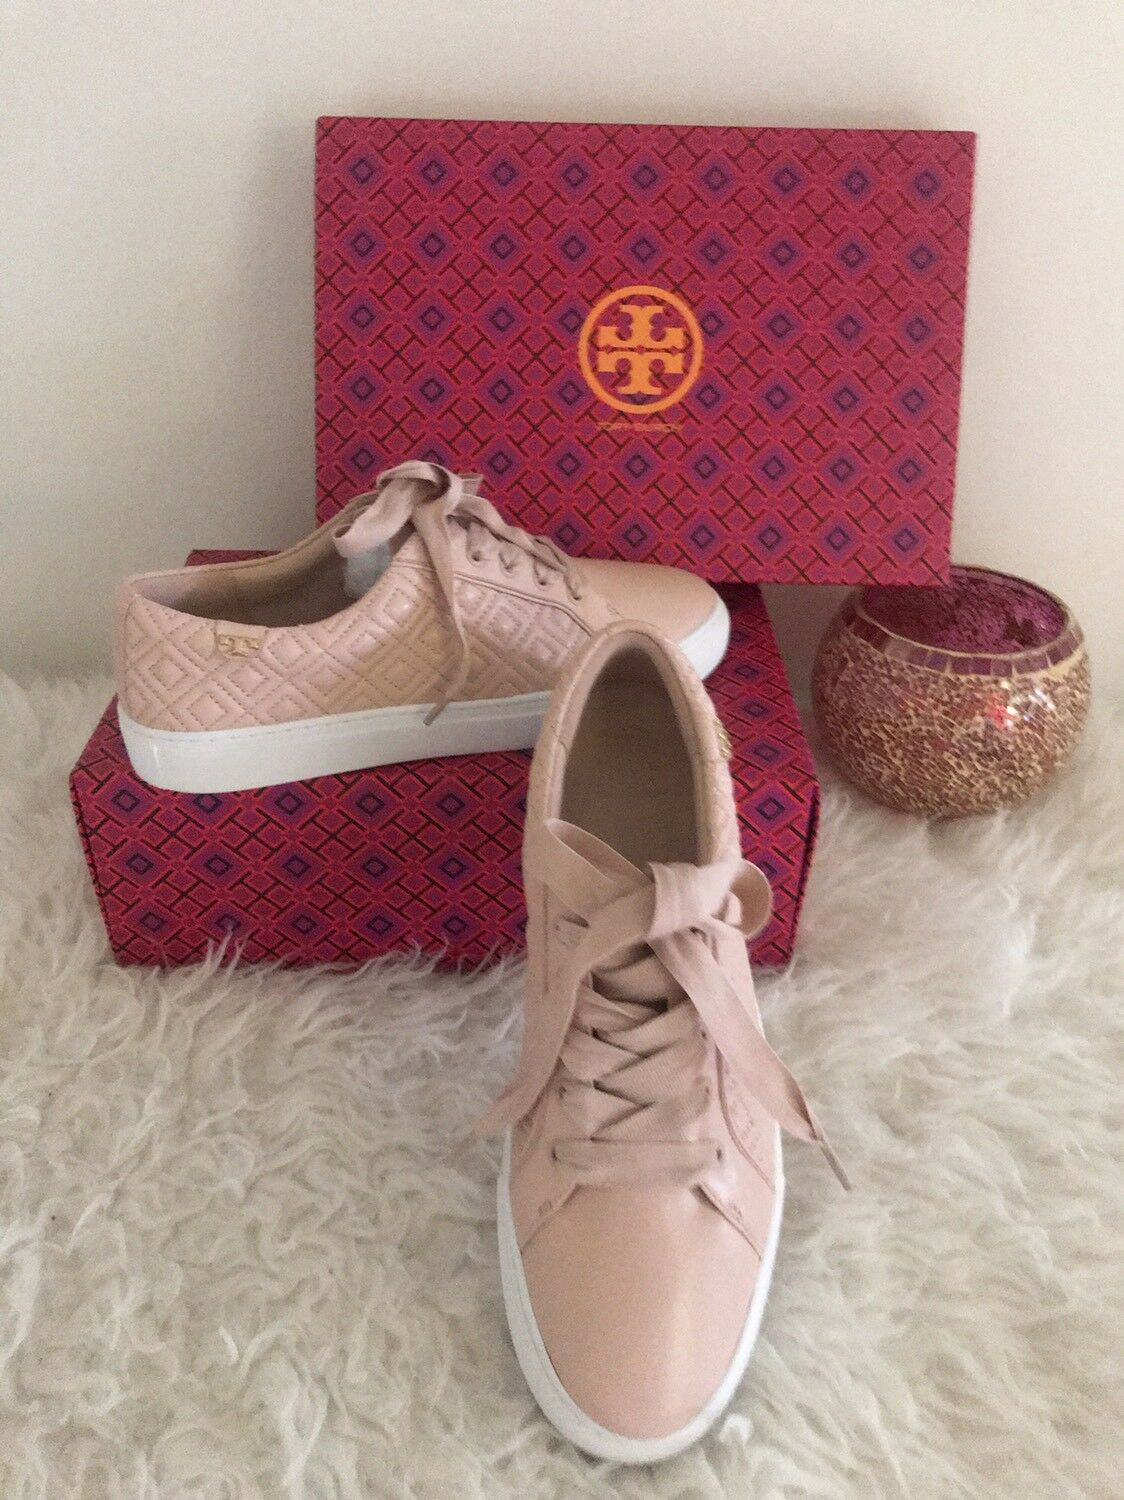 Tory Burch Marion Leather Quilted Lace Up Sneakers SACHET PINK US 8.5 9